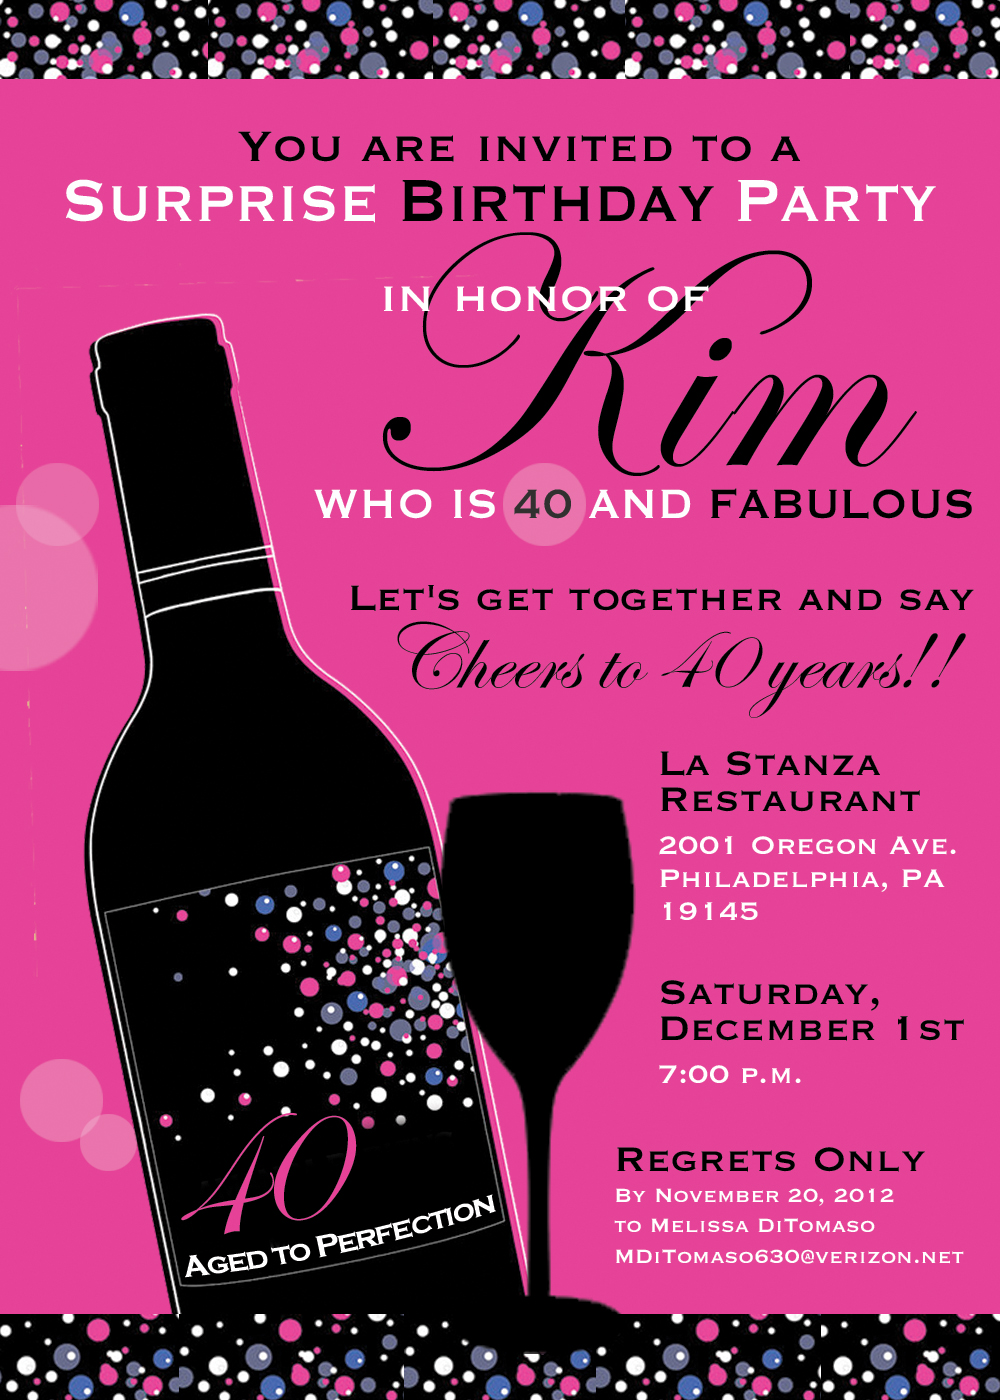 40th birthday party invitation designs ; surprise_40th_birthday_party_invitation_ideas_7